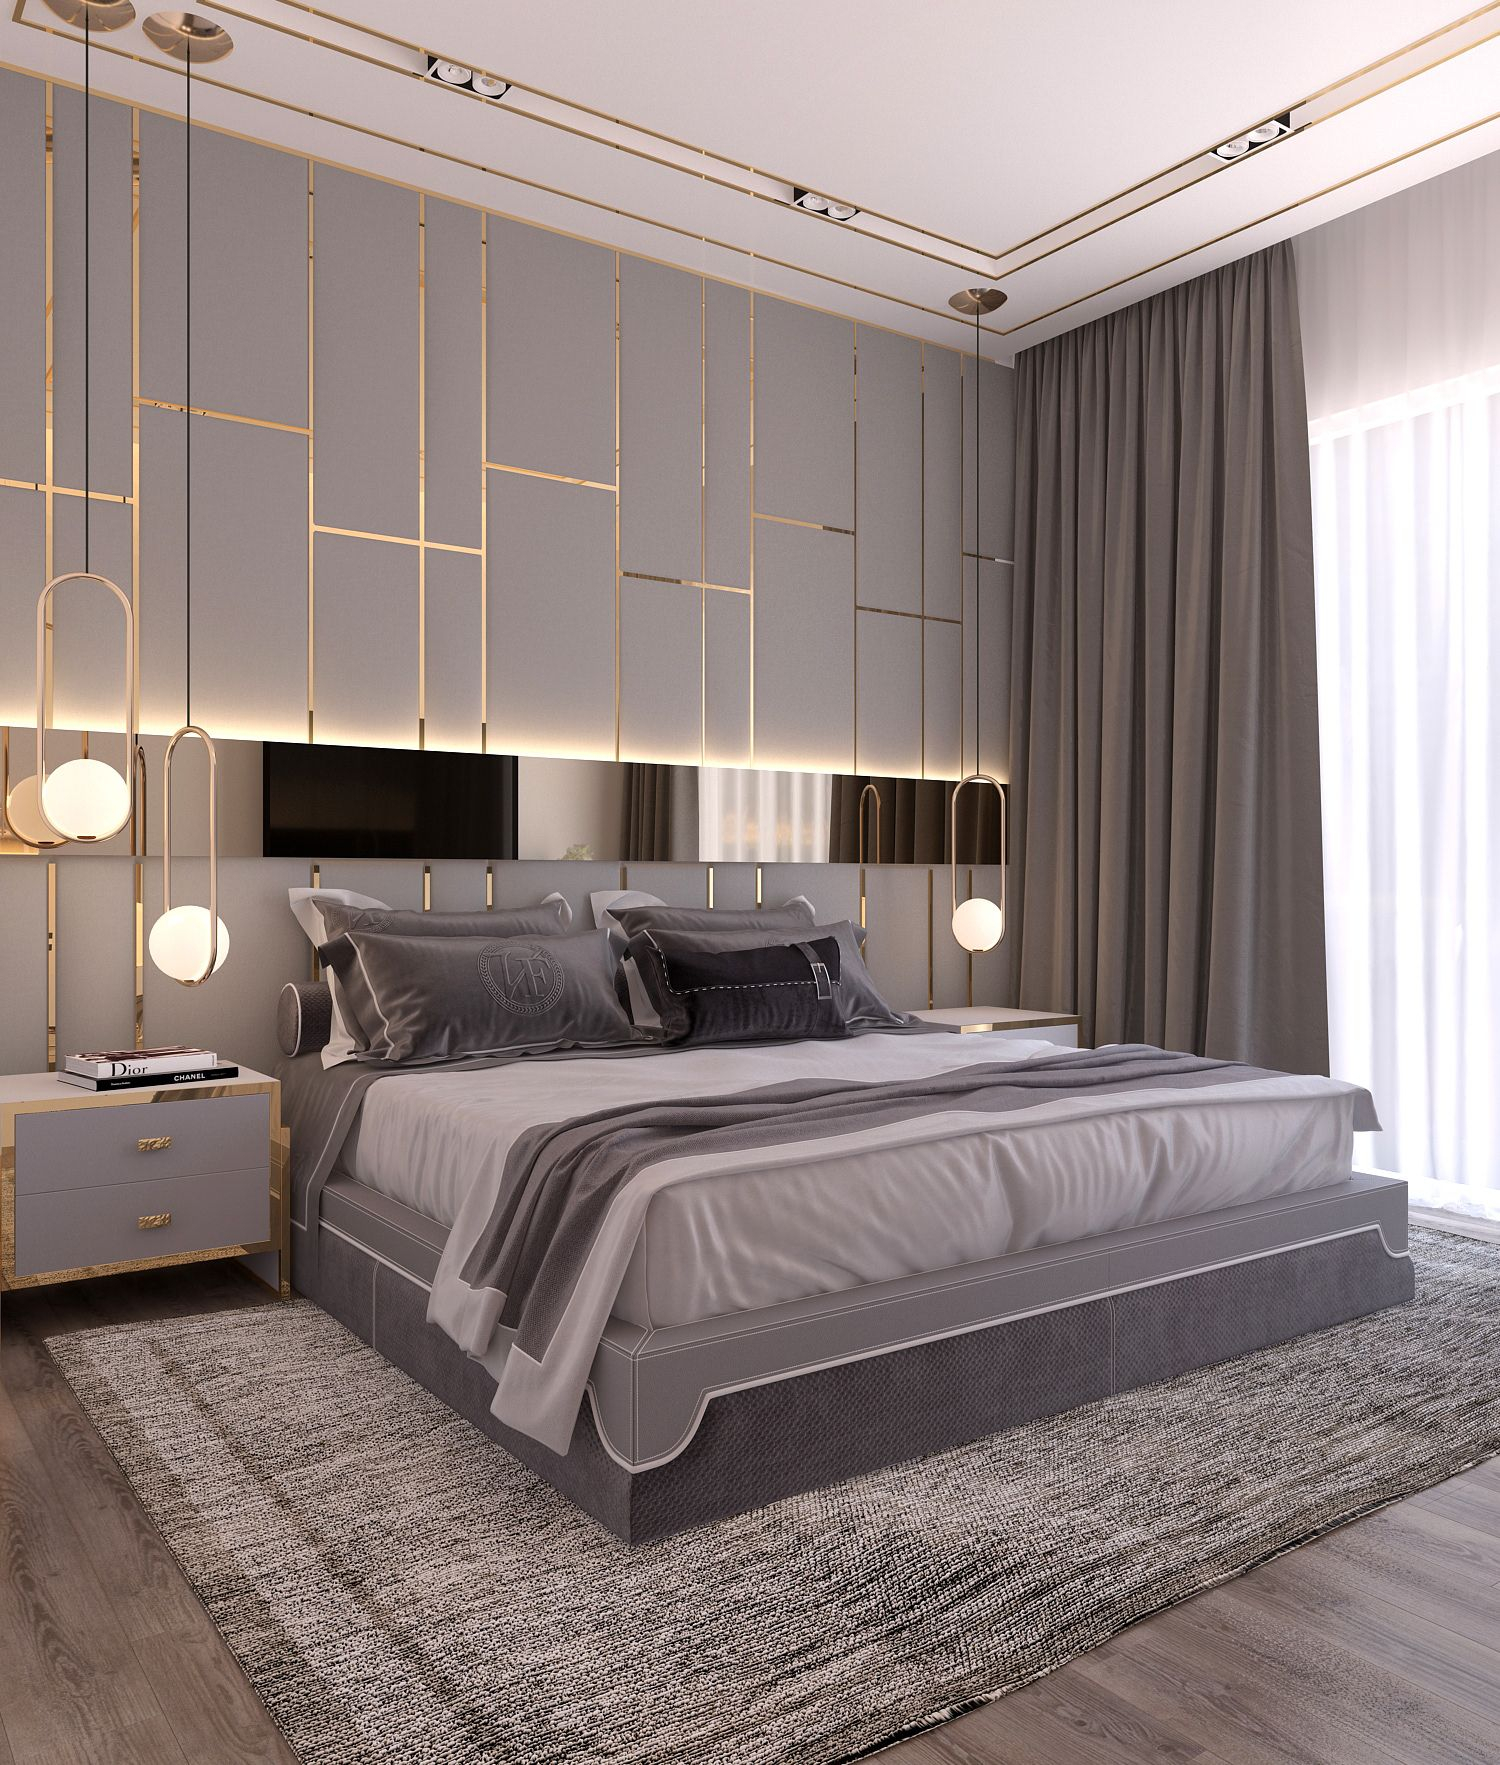 Modern Style Bedroom Dubai Project On Behance Bedrooms In 2019 within 15 Some of the Coolest Designs of How to Craft Modern Bedroom Images